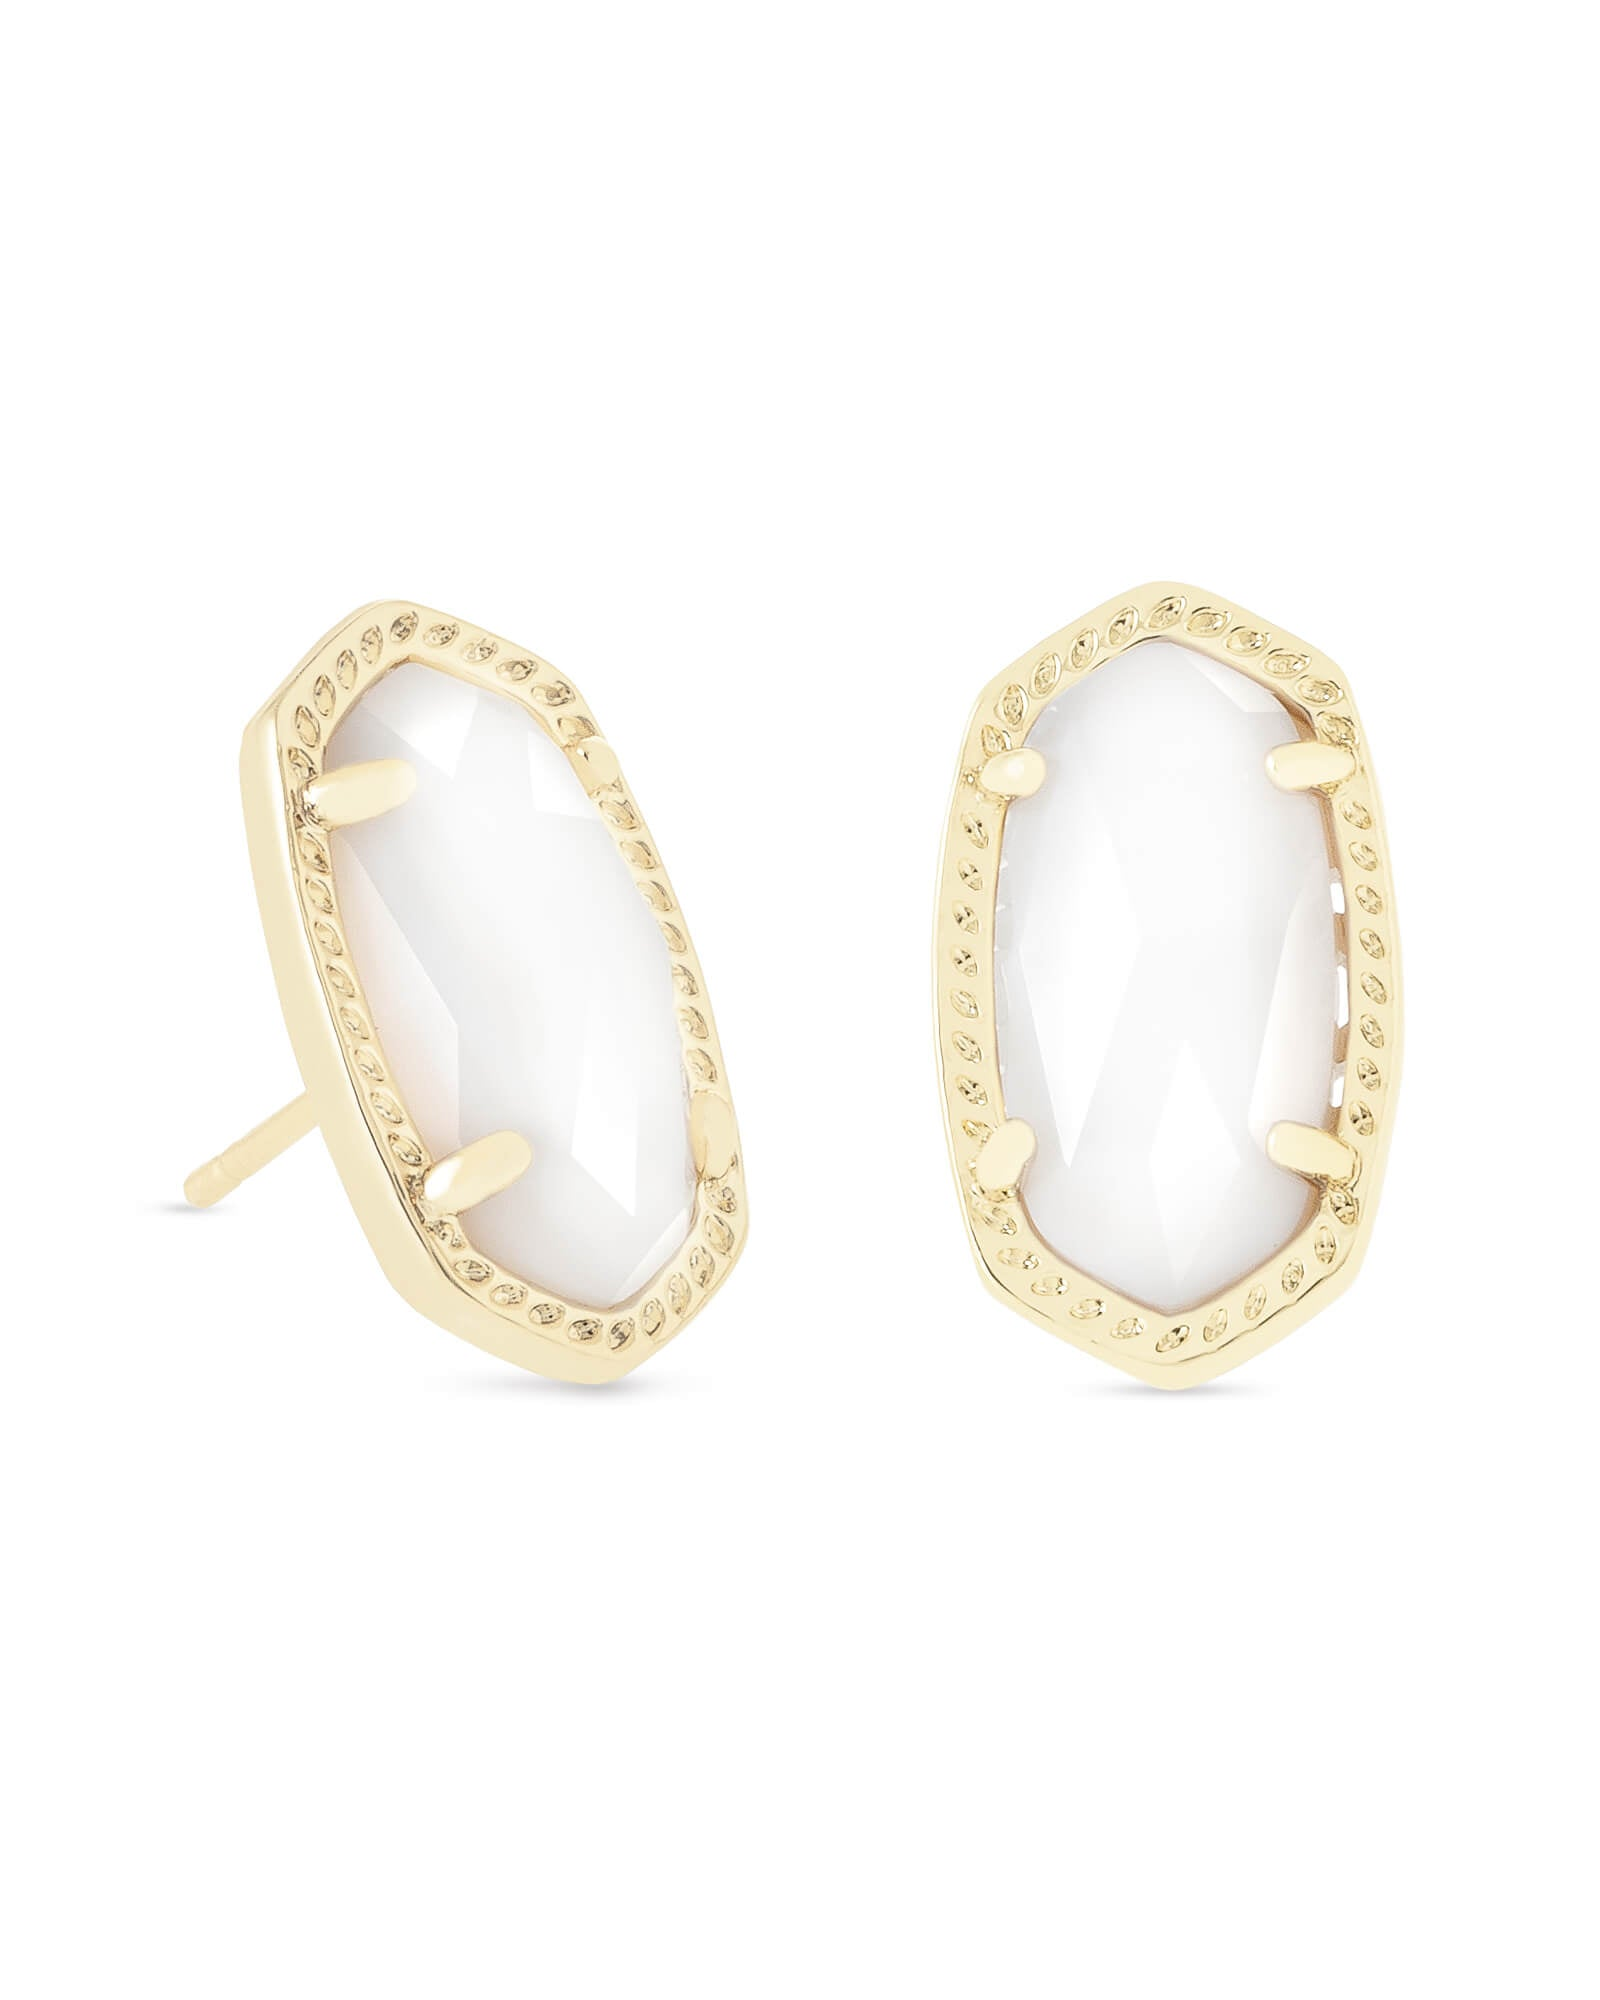 Kendra Scott Ellie Earrings